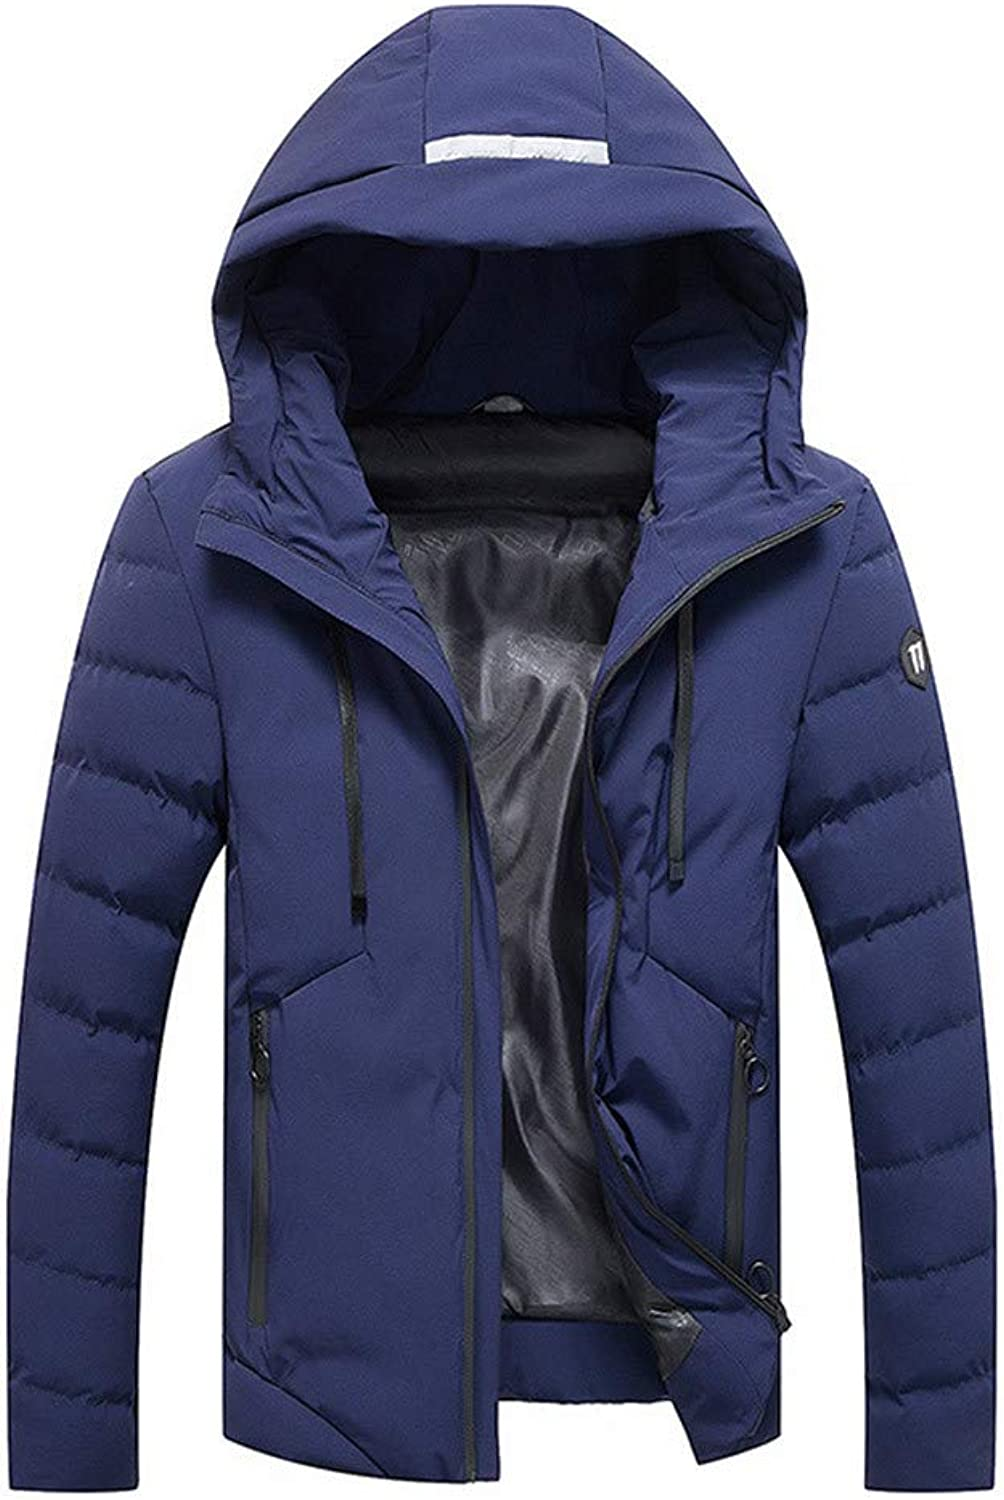 Mens Winter Warm Hooded Zipped Thick Fleece Coat Cotton-Padded Jacket (color   Dark blueee, Size   XL)